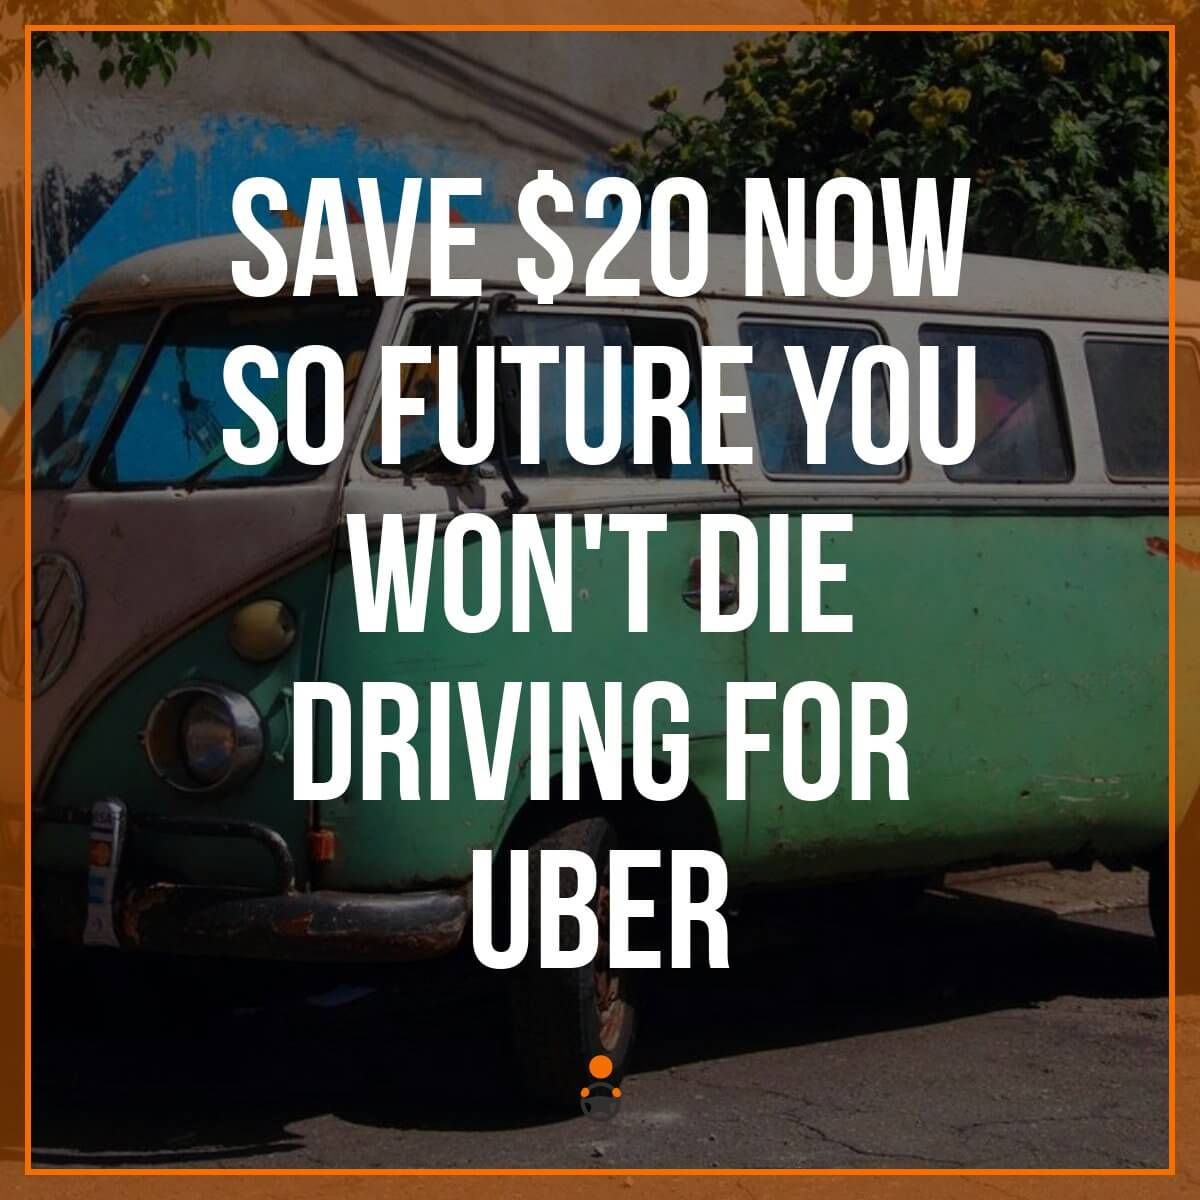 In the majority of cases, you aren't going to get rich driving for Uber. However, there are ways to plan for your financial future so that you're not dependent on Uber when you're 65. Senior RSG contributor Christian Perea covers what younger rideshare drivers can do right now to prepare themselves financially - and all it starts with is $20 a week.